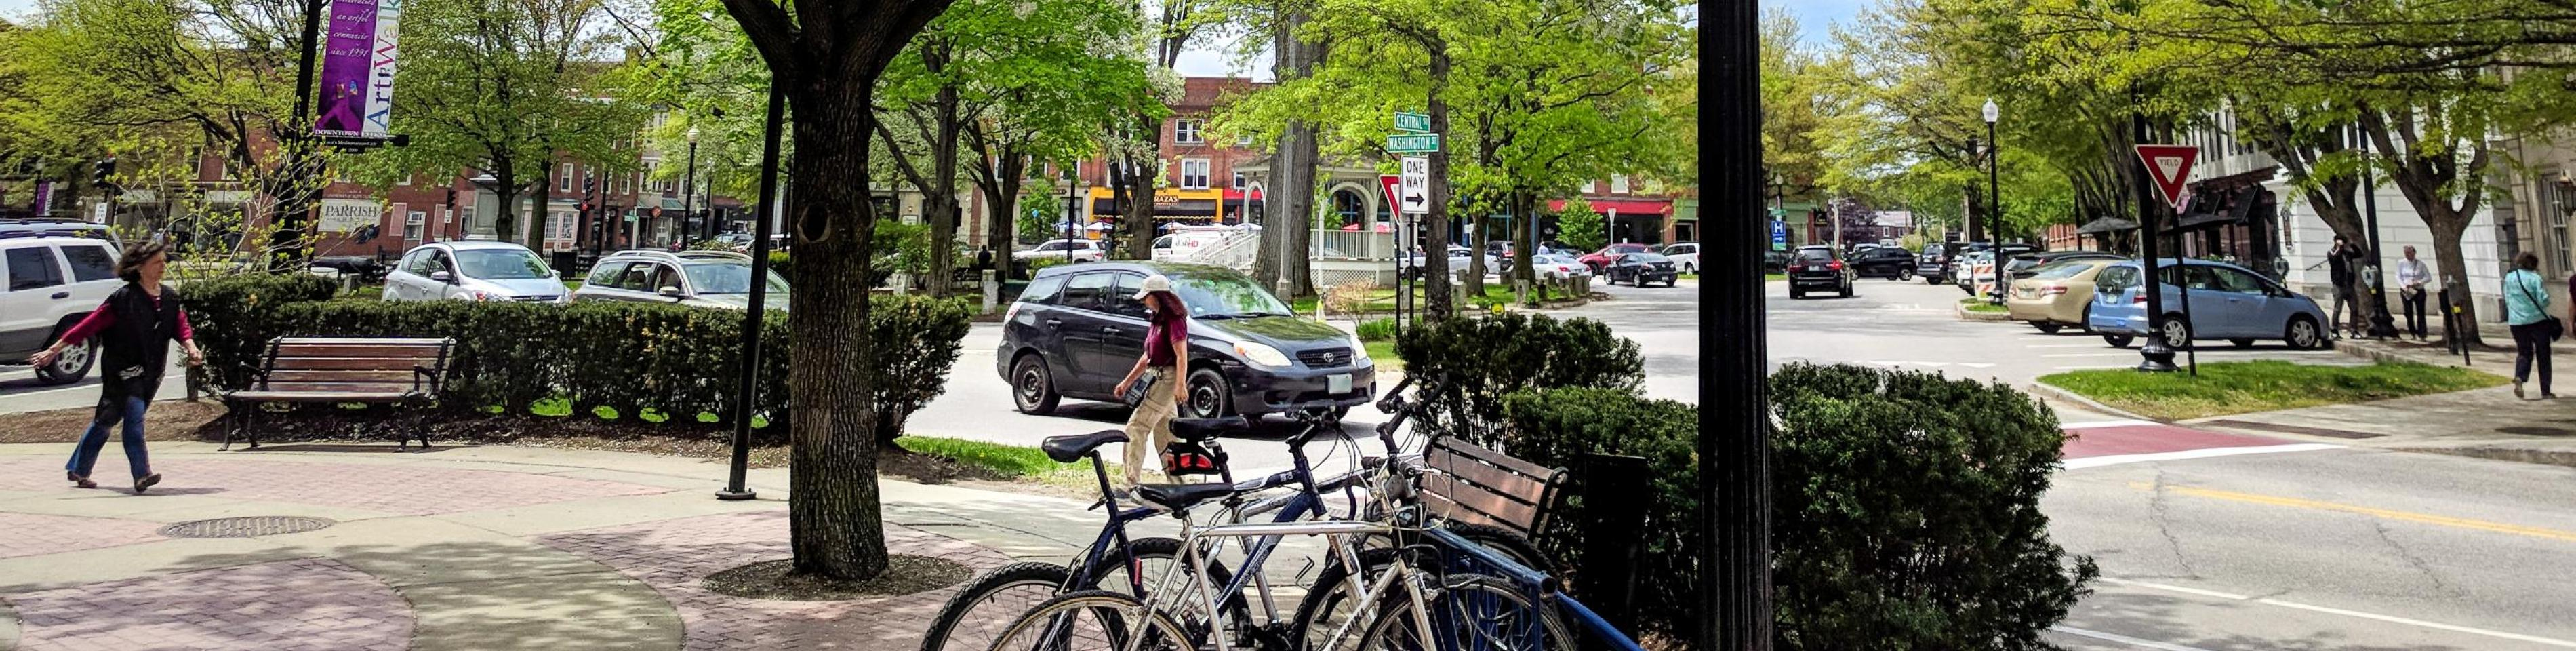 Downtown Keene in Spring